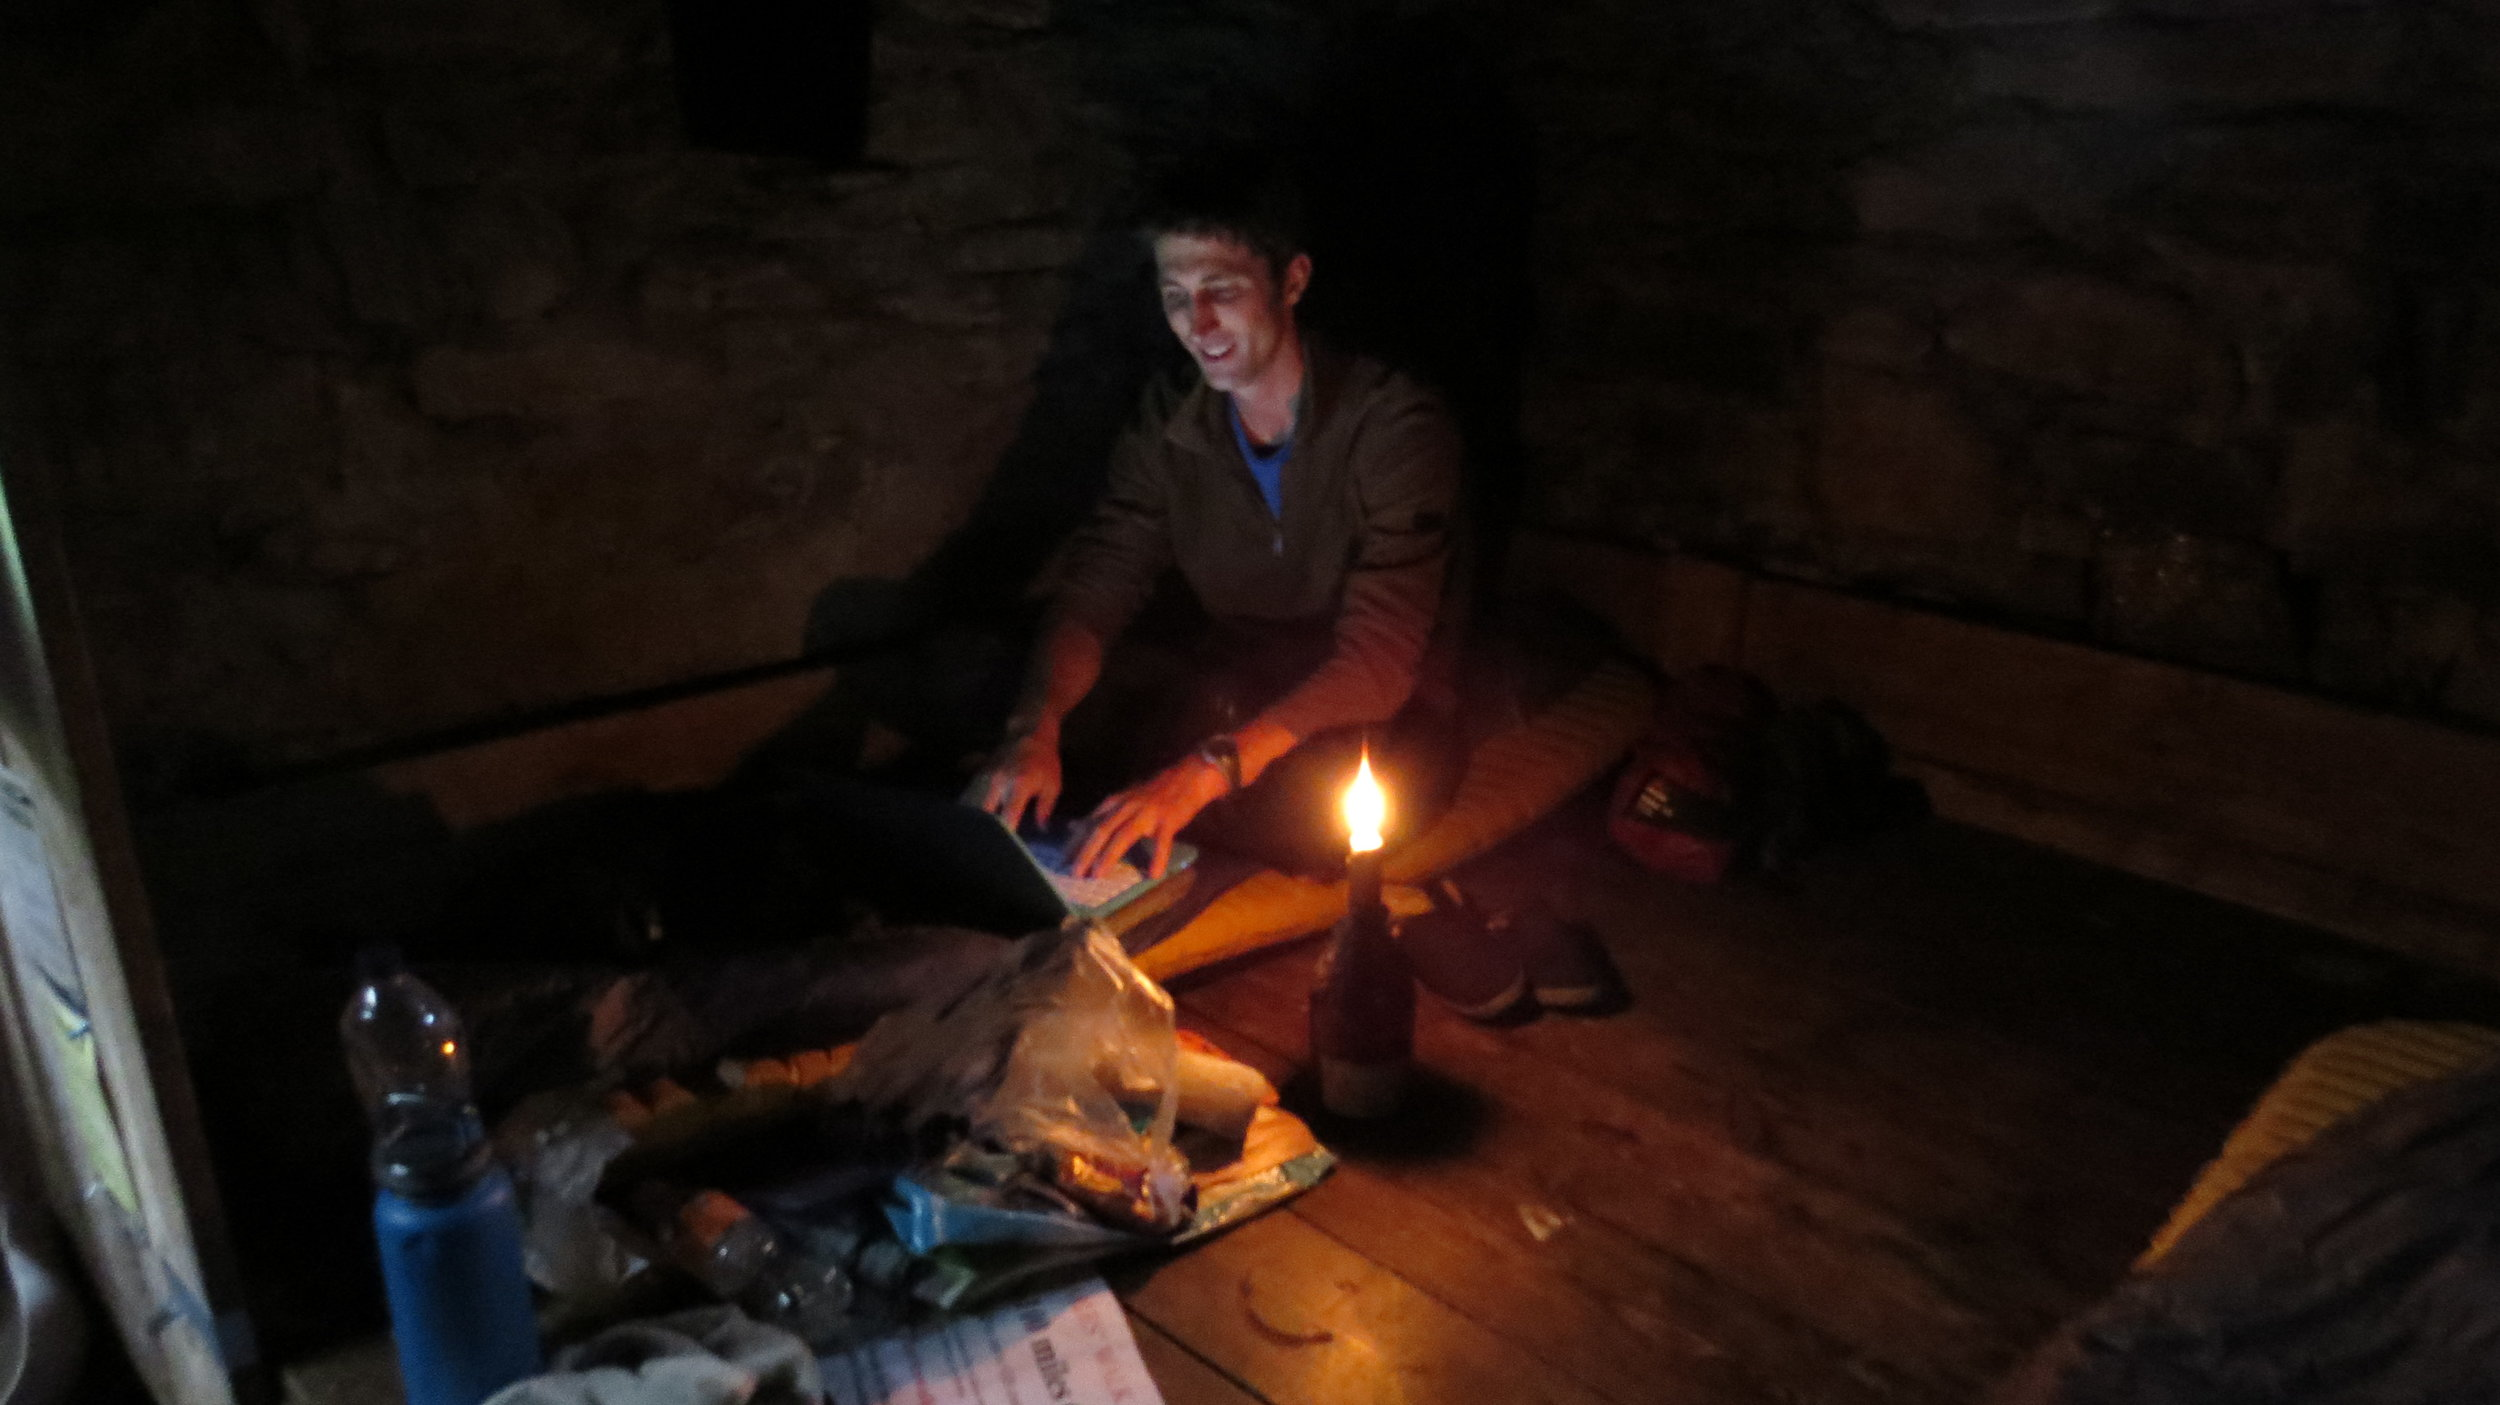 Diary by Candlelight